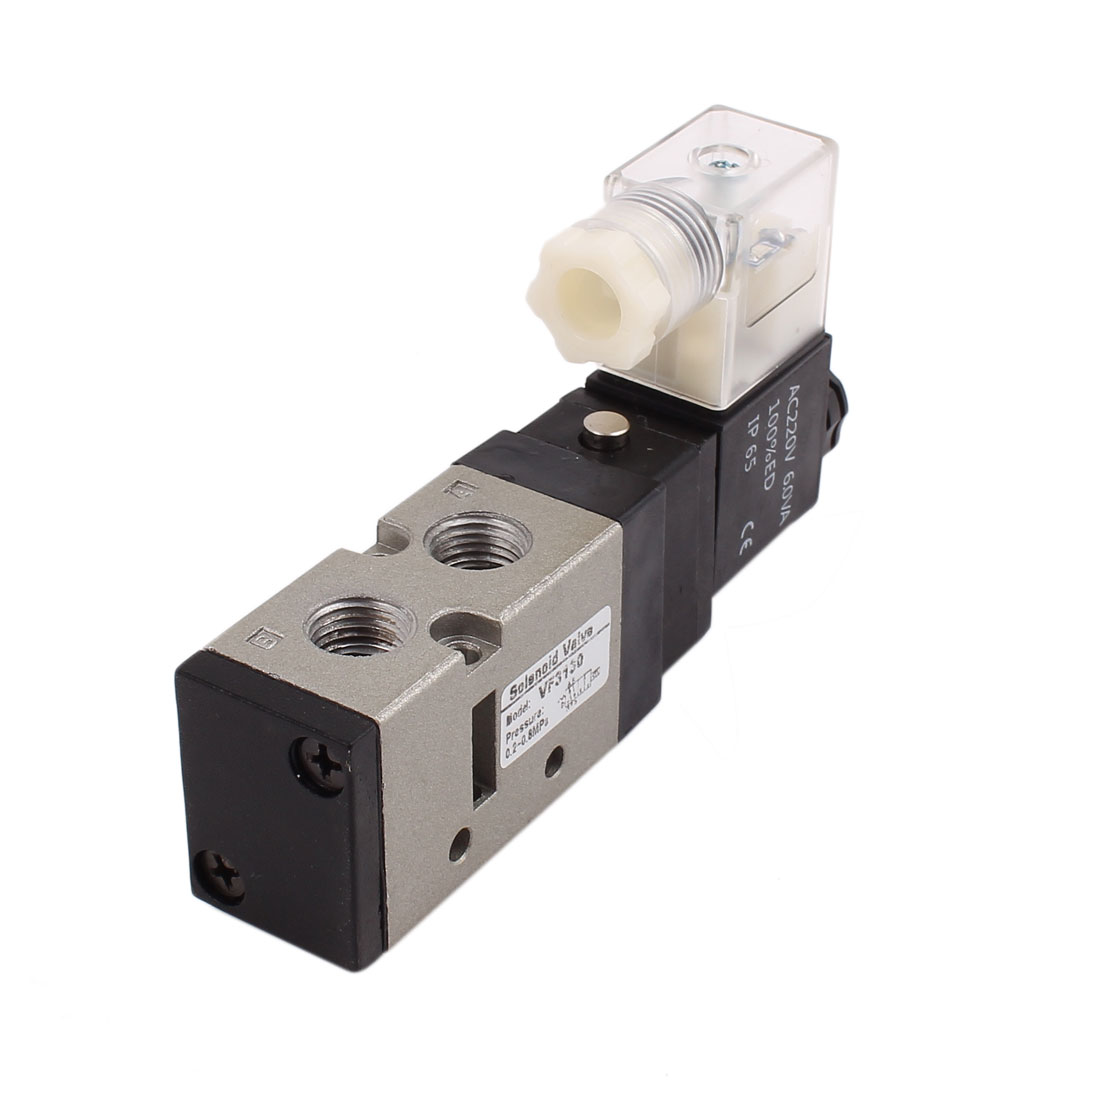 AC 220V Neutral Electric Pneumatic Component Air Control Solenoid Valve DS3130